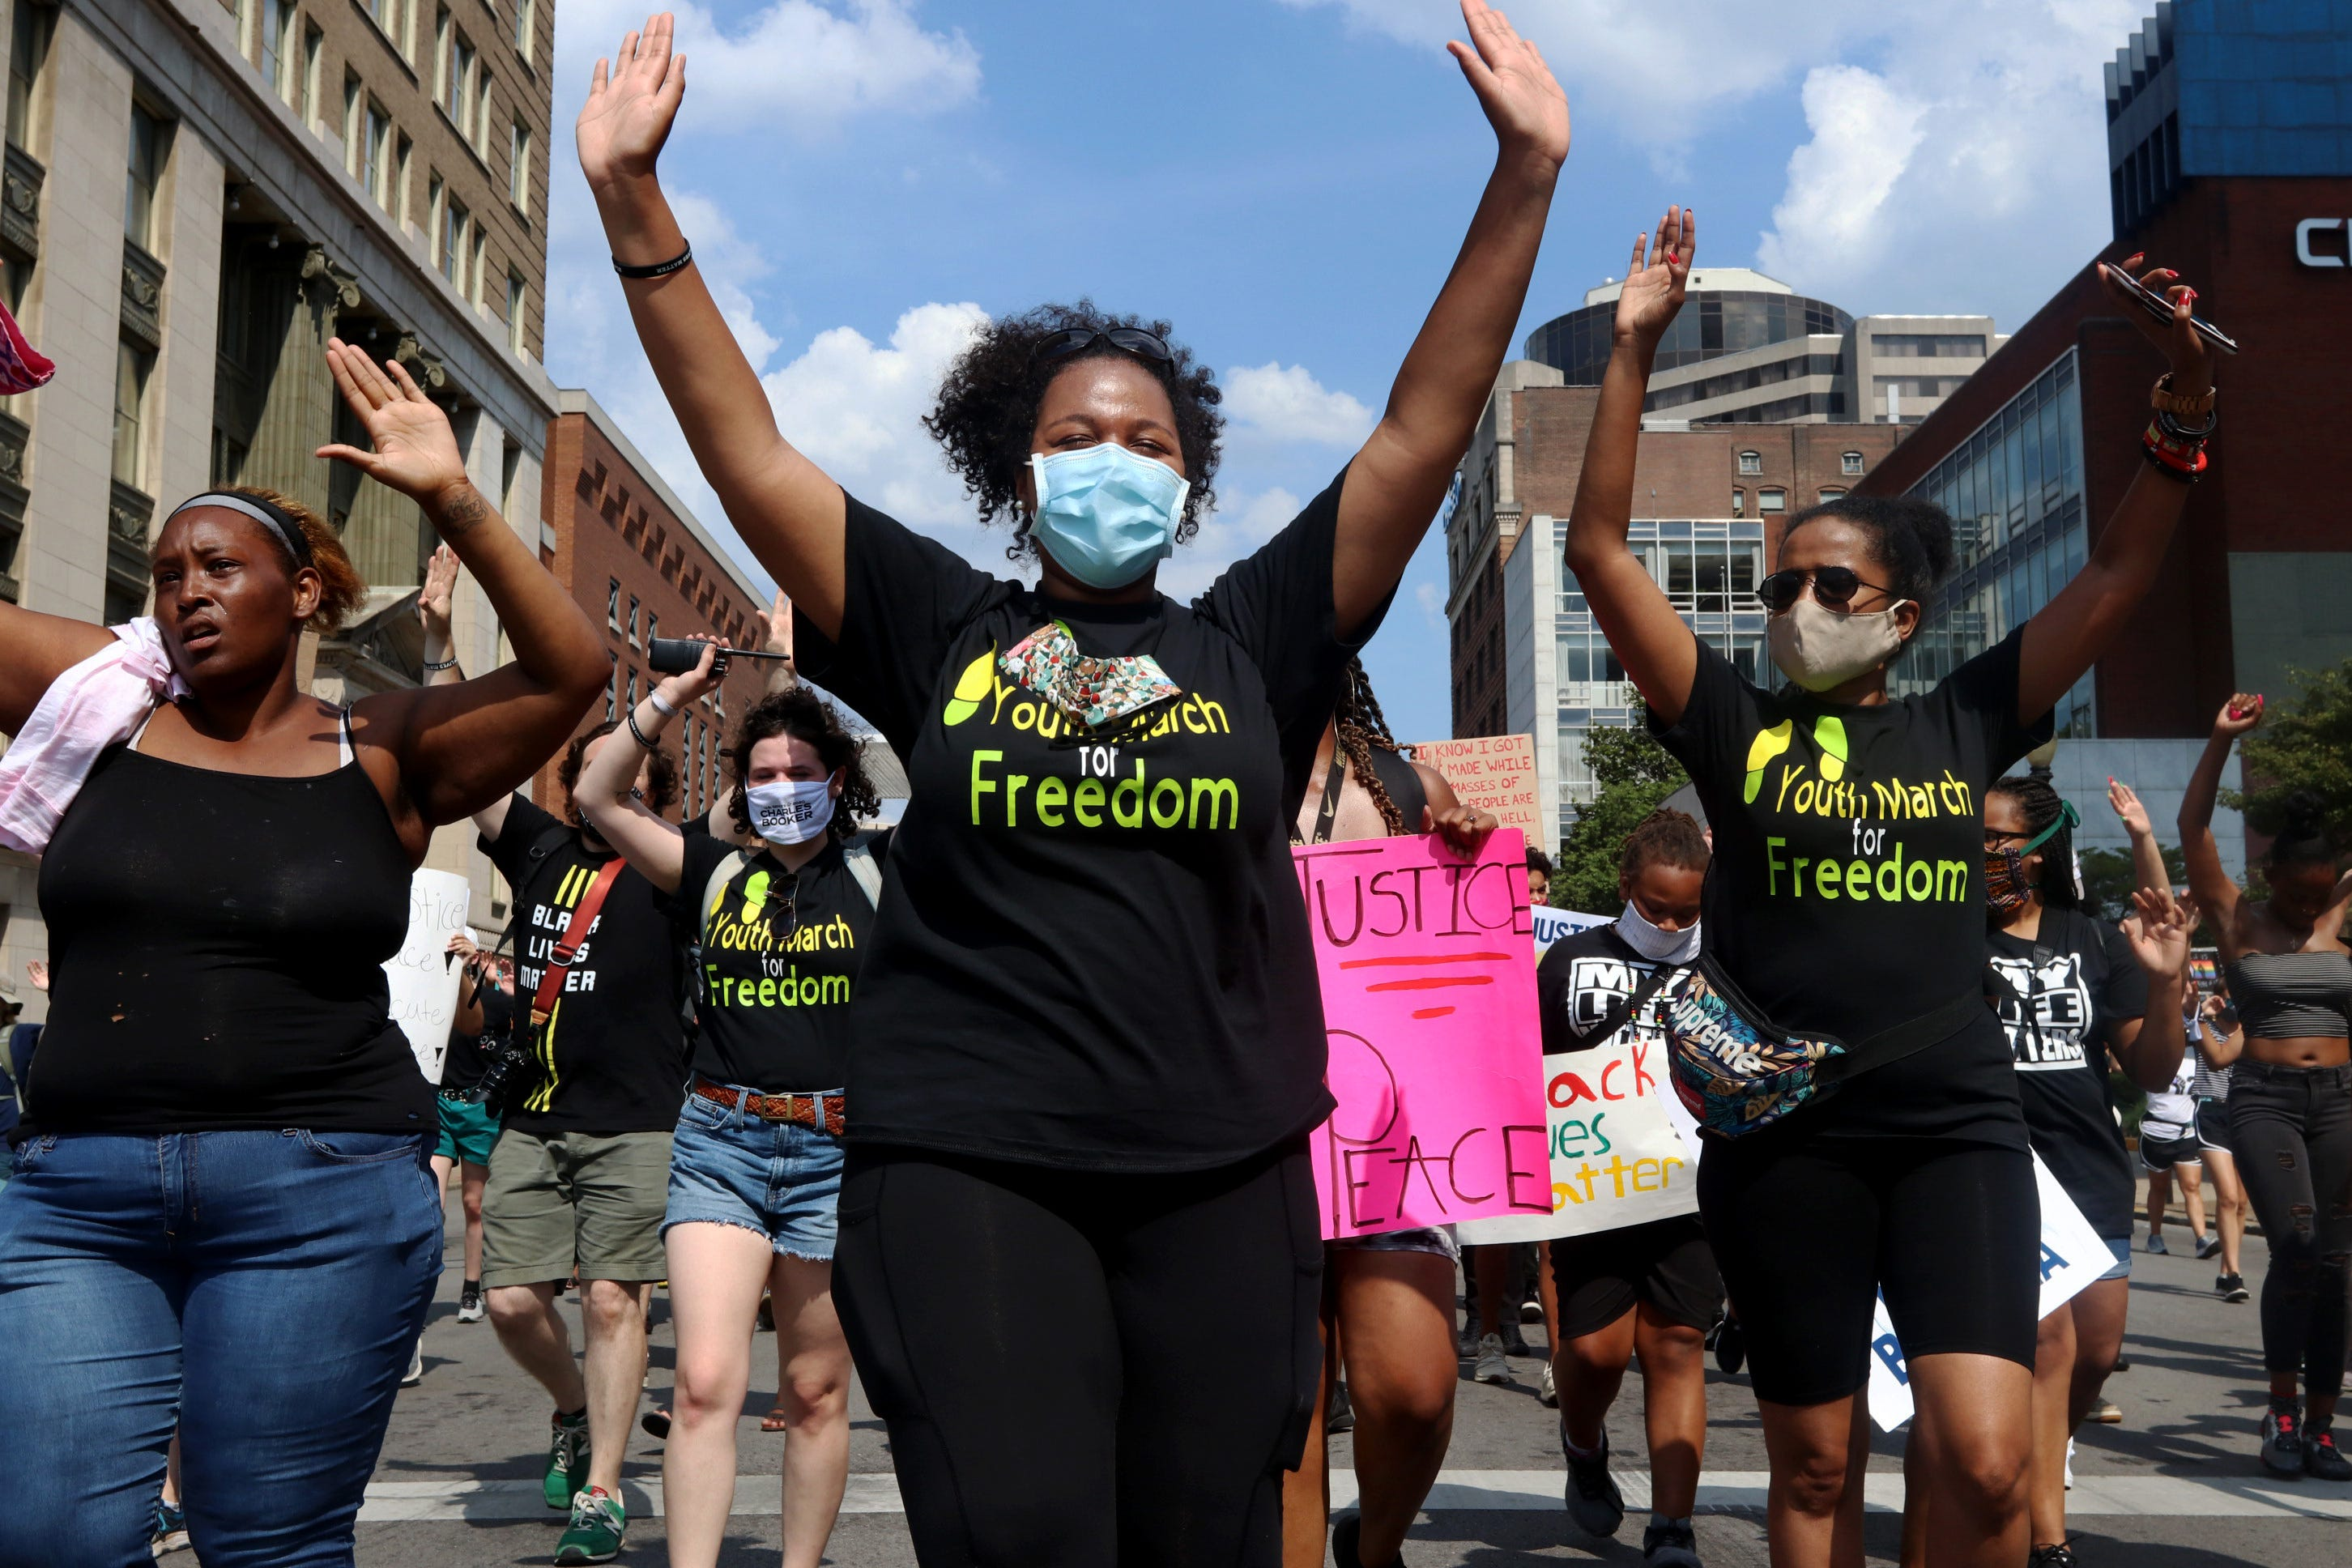 Imani Smith, 19, center, helps lead the Youth March for Freedom on July 4, 2020 in Louisville, Ky.